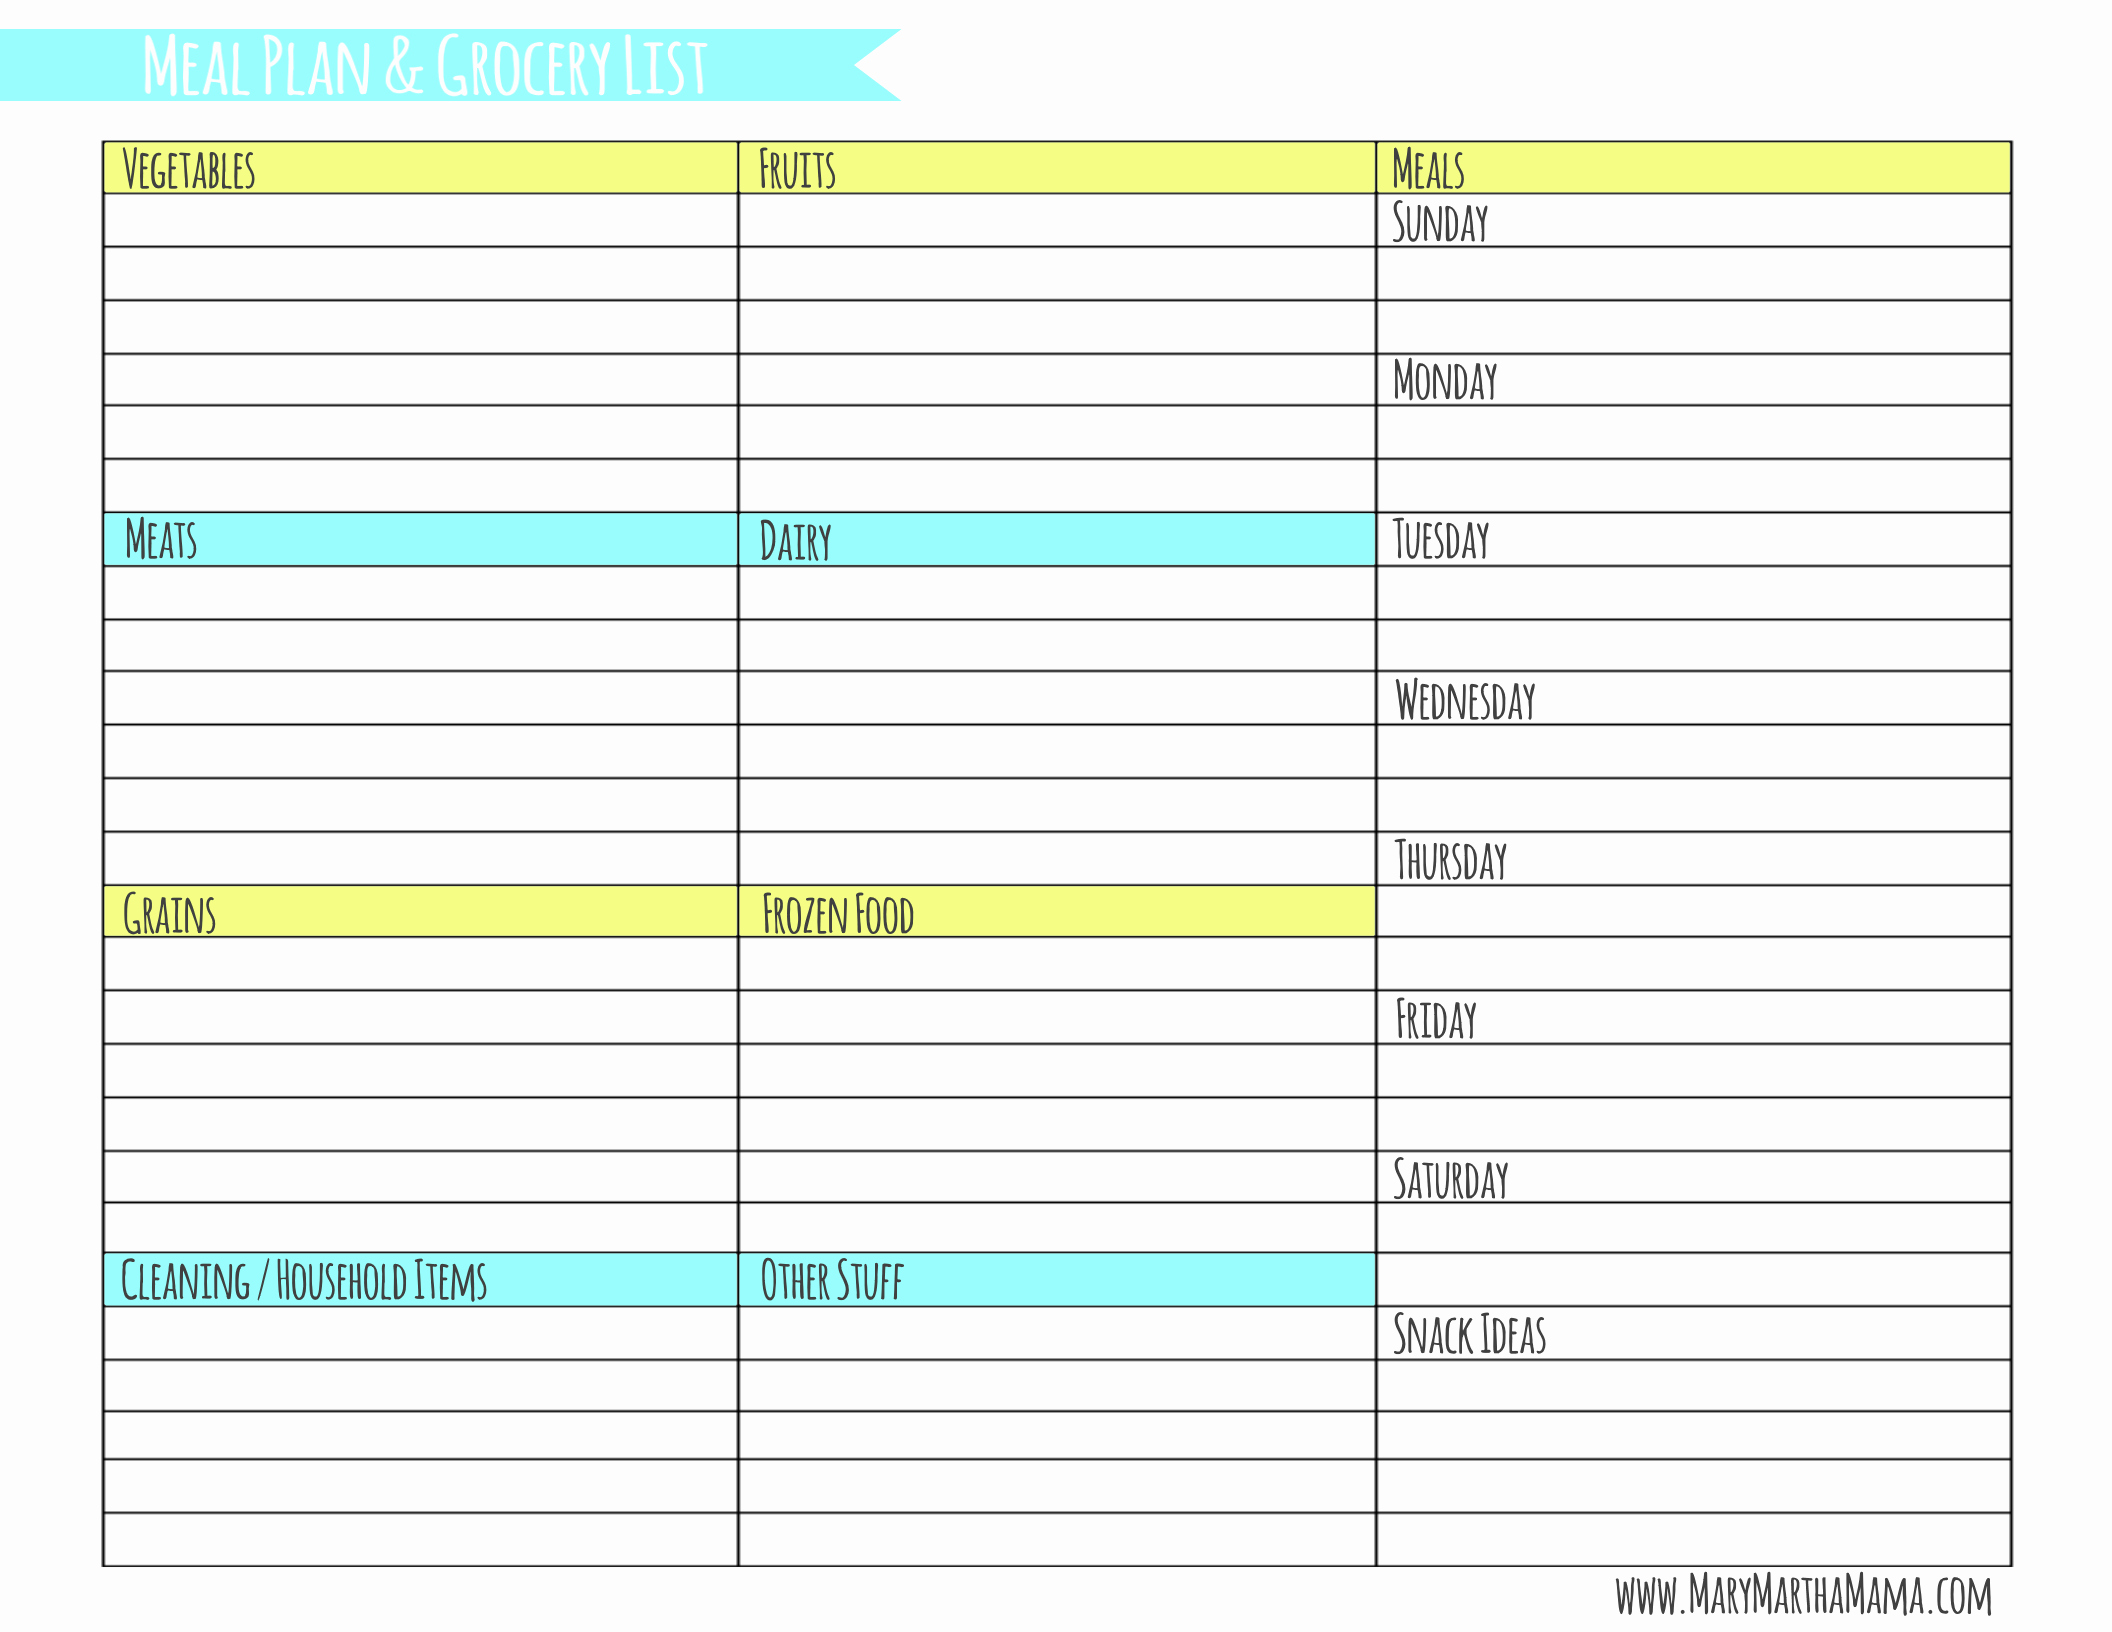 Meal Plan Template Word Lovely Weekly Meal Planner Template with Grocery List – Mary